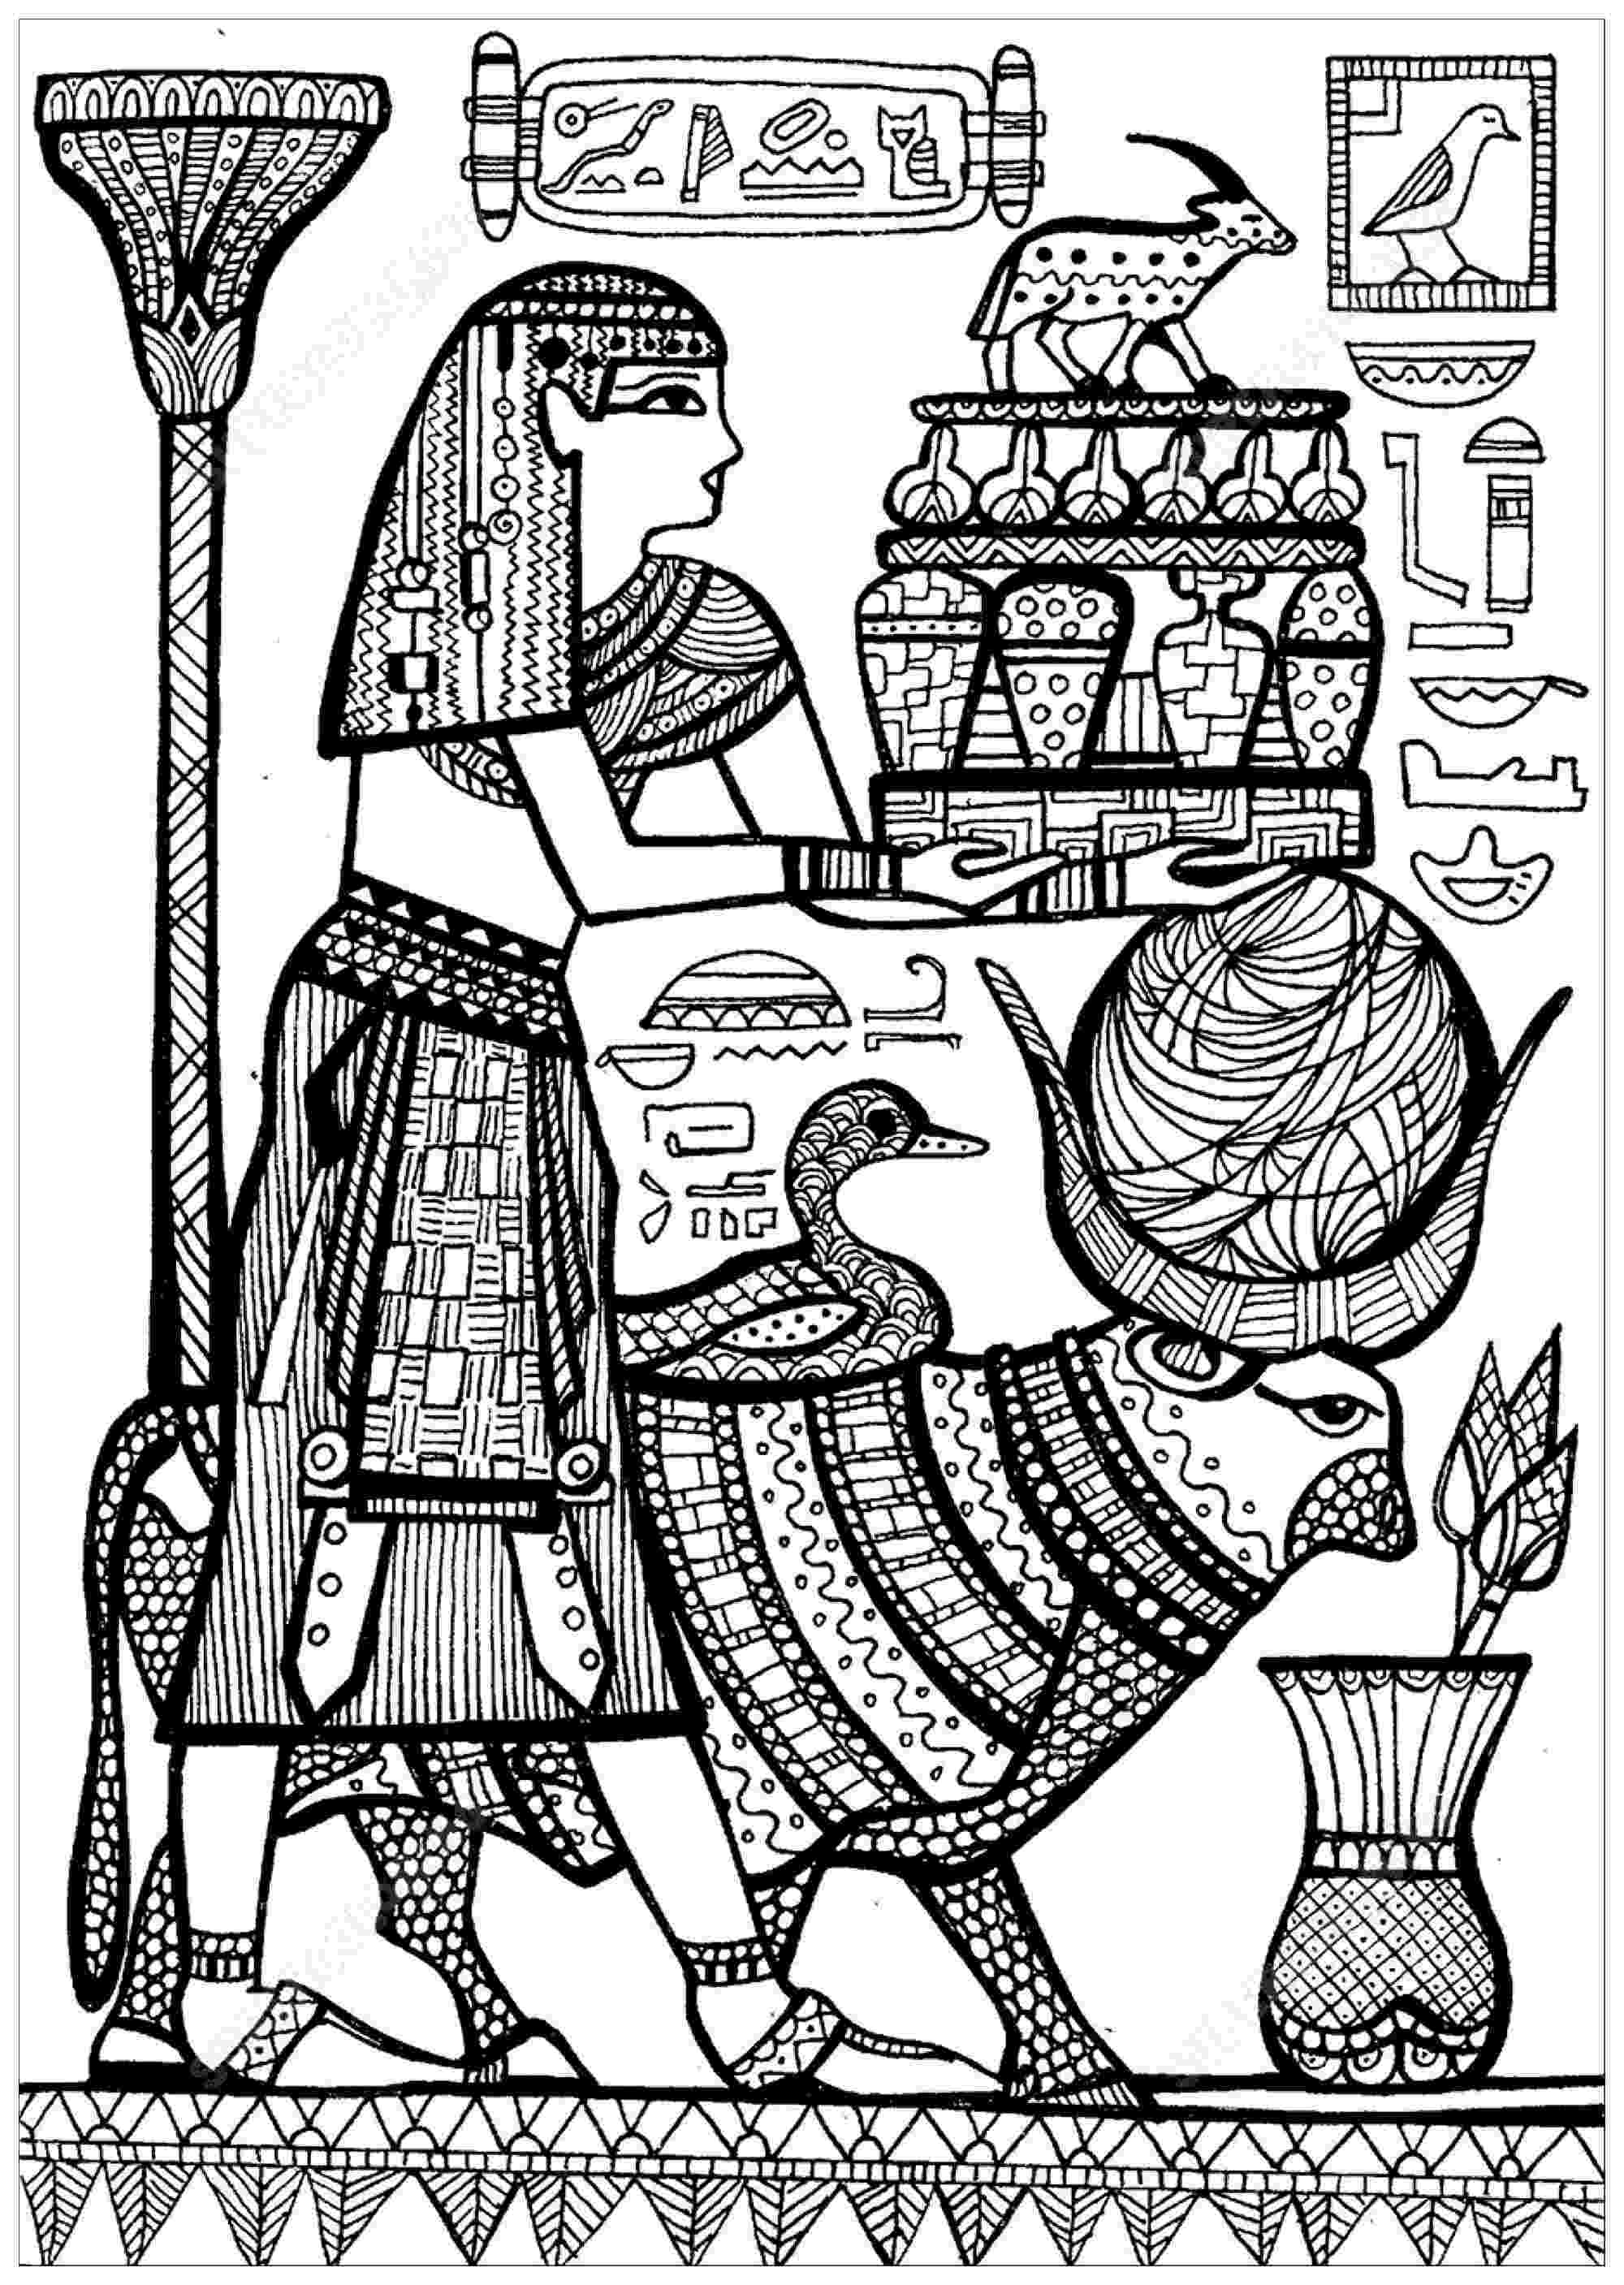 egypt coloring pages egypt coloring pages coloring pages to download and print coloring pages egypt